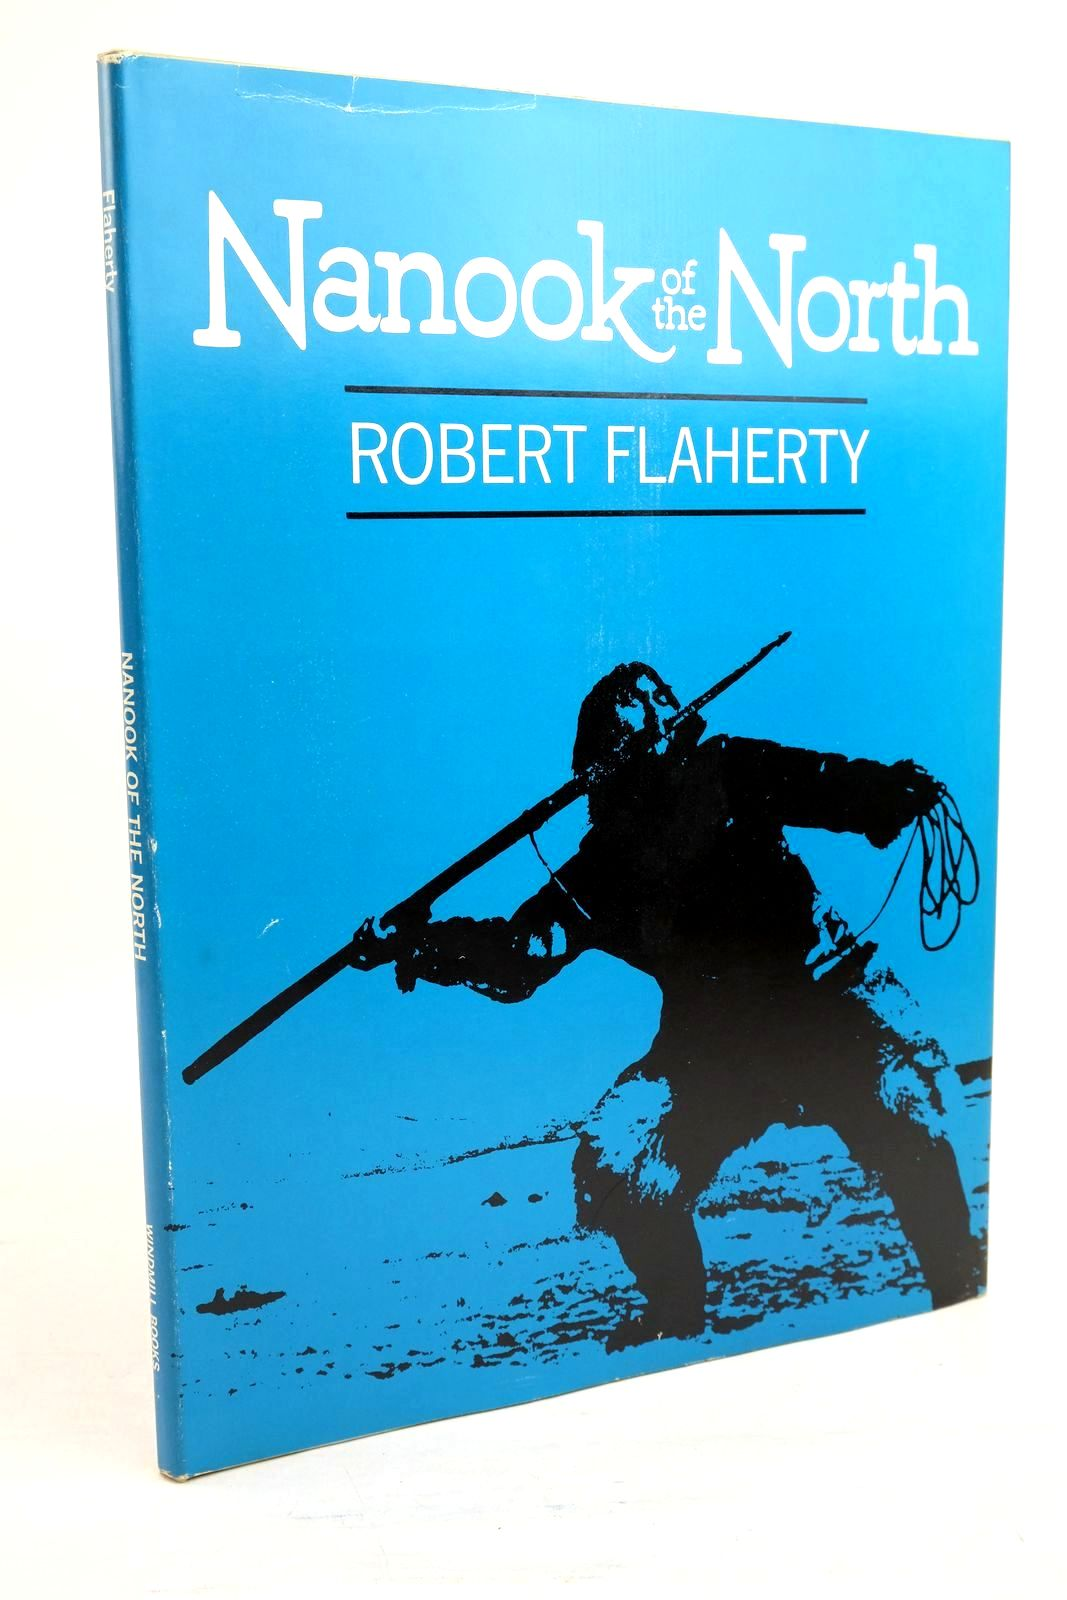 Photo of NANOOK OF THE NORTH written by Flaherty, Robert published by Windmill Books (STOCK CODE: 1321112)  for sale by Stella & Rose's Books